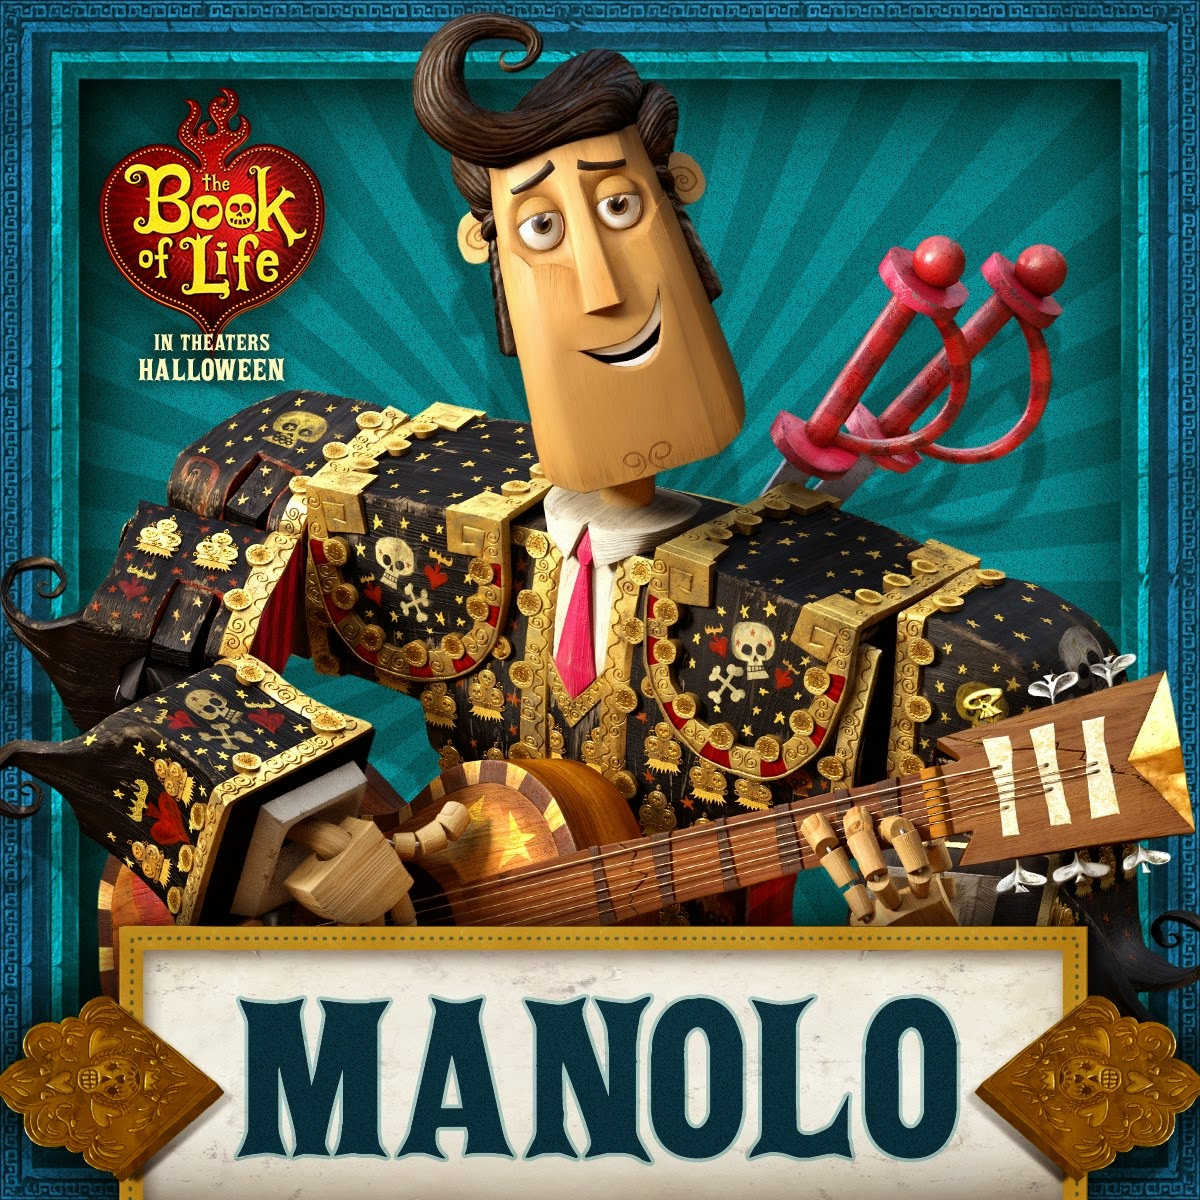 Allenation Get The Halloween Look Manolo The Book Of Life